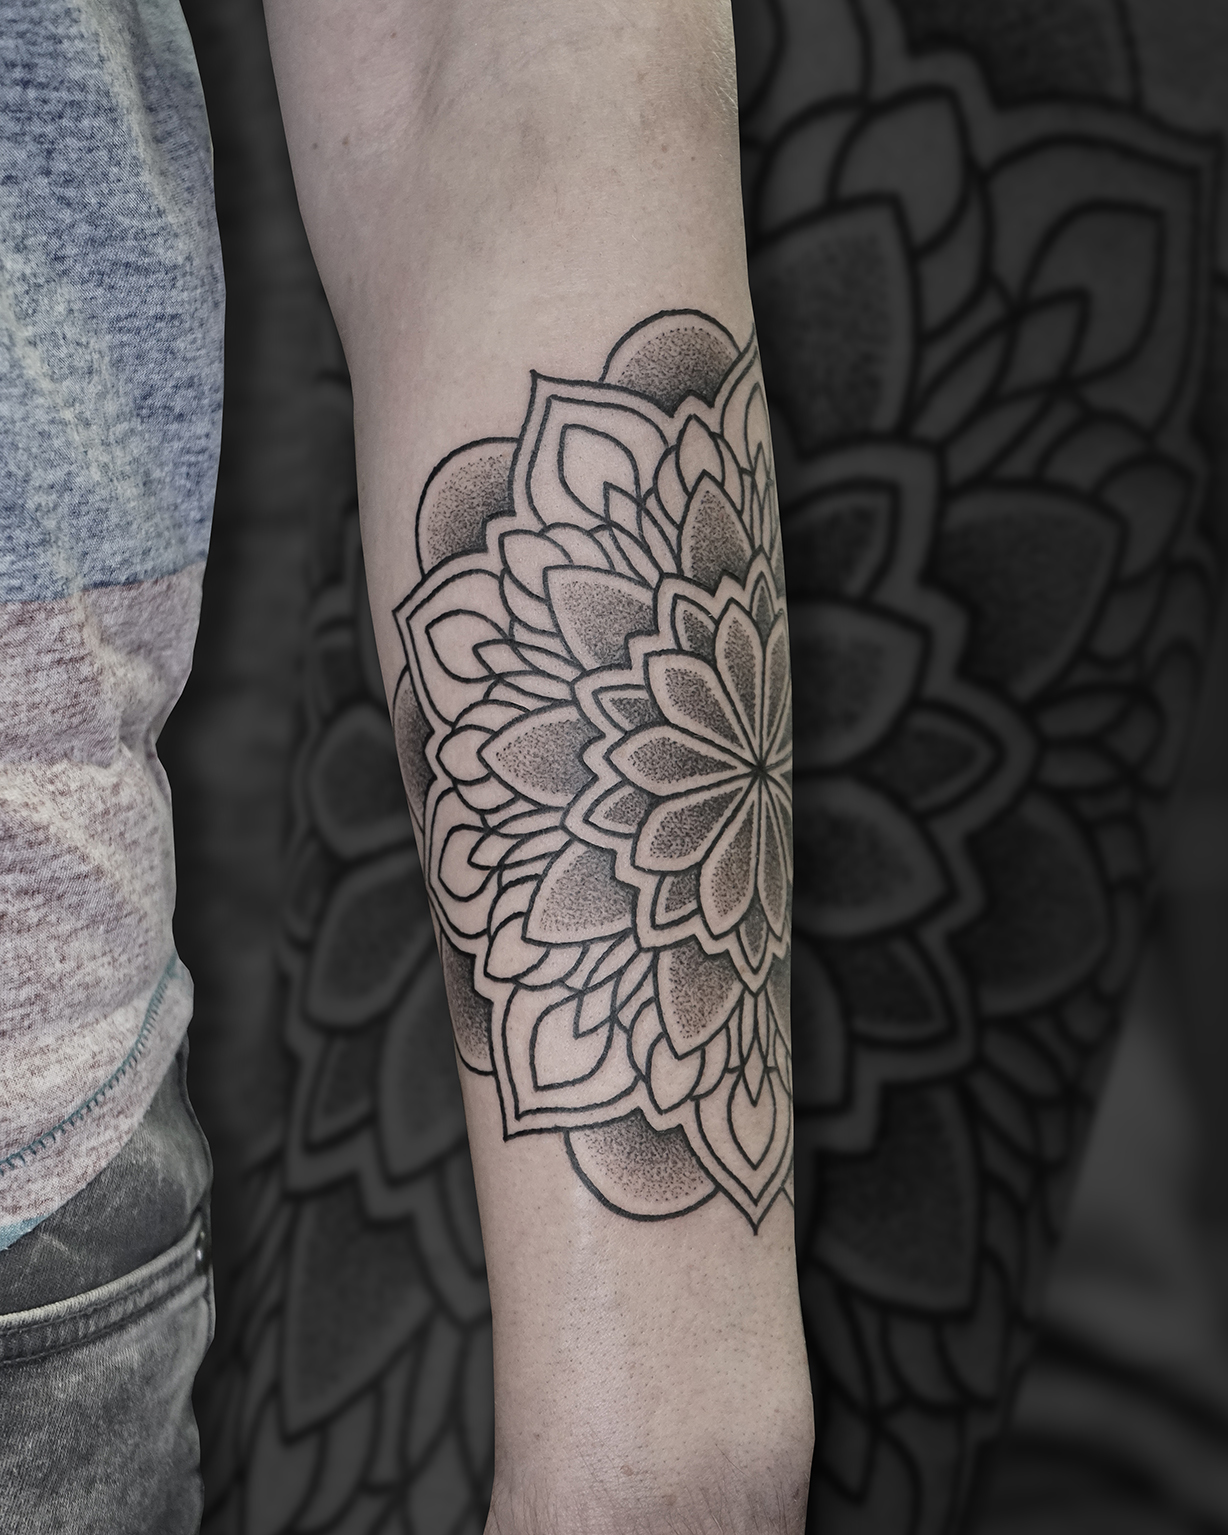 Tattoo Zincik - Mandala tattoo design